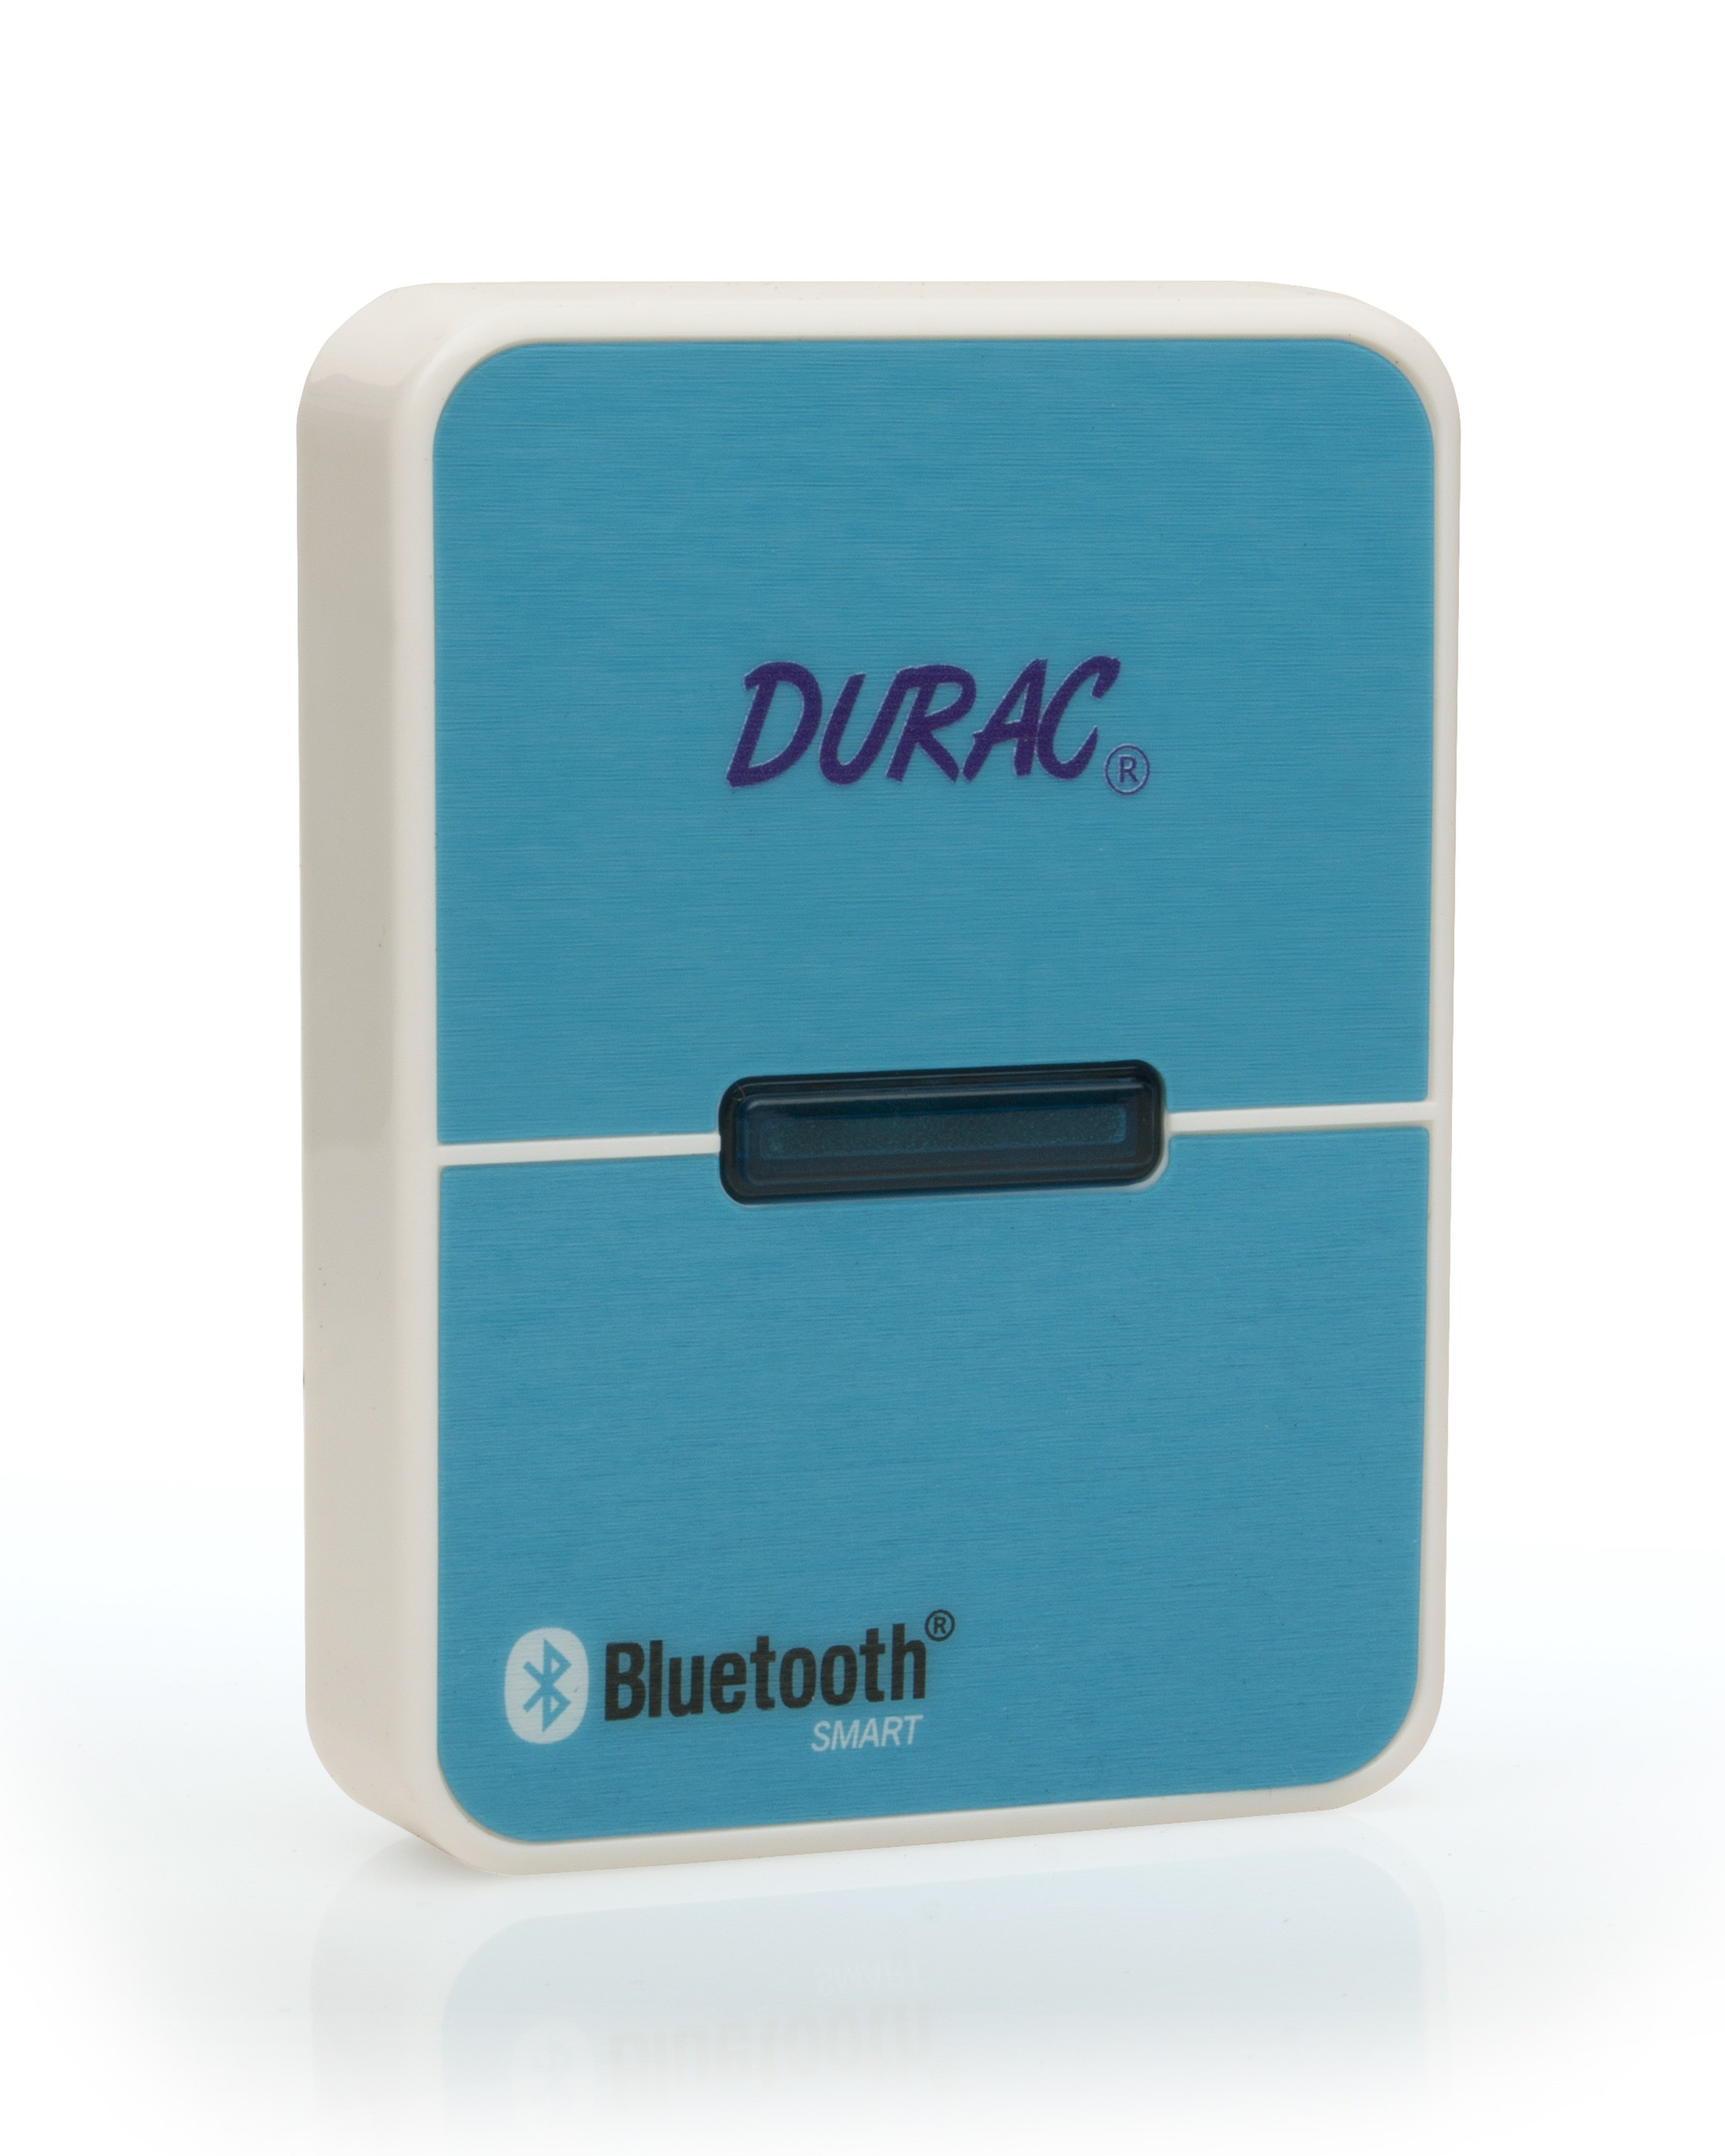 H-B DURAC Bluetooth Thermometer Hygrometer with 30-Day Data Logging; -10/50C (14/122F)